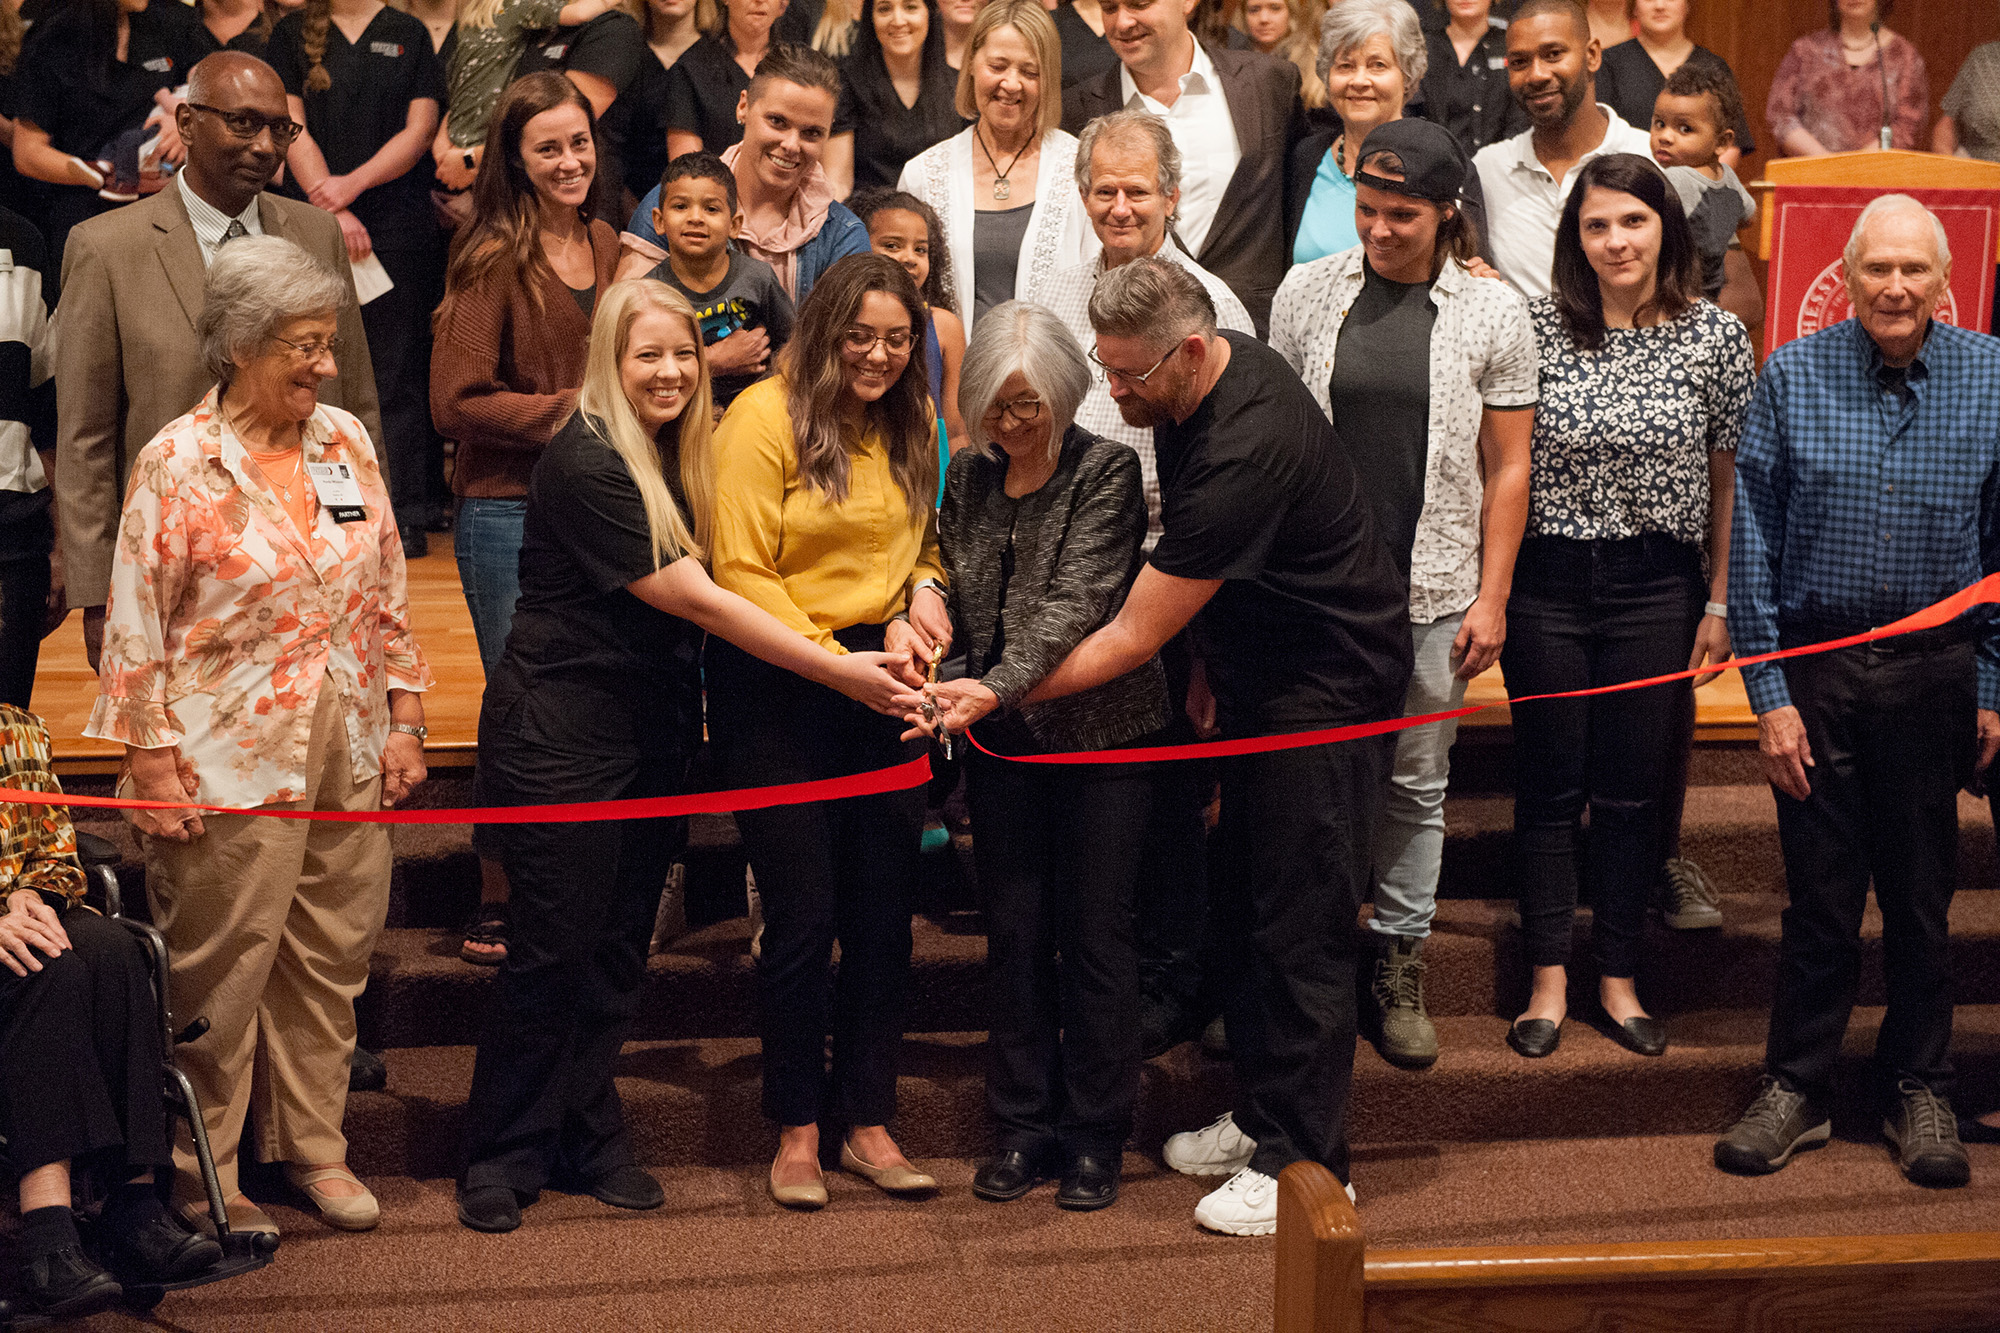 Bonnie Sowers, former director of nursing education, and several current nursing students cut the ribbon at the Bonnie Sowers Nursing Center dedication.